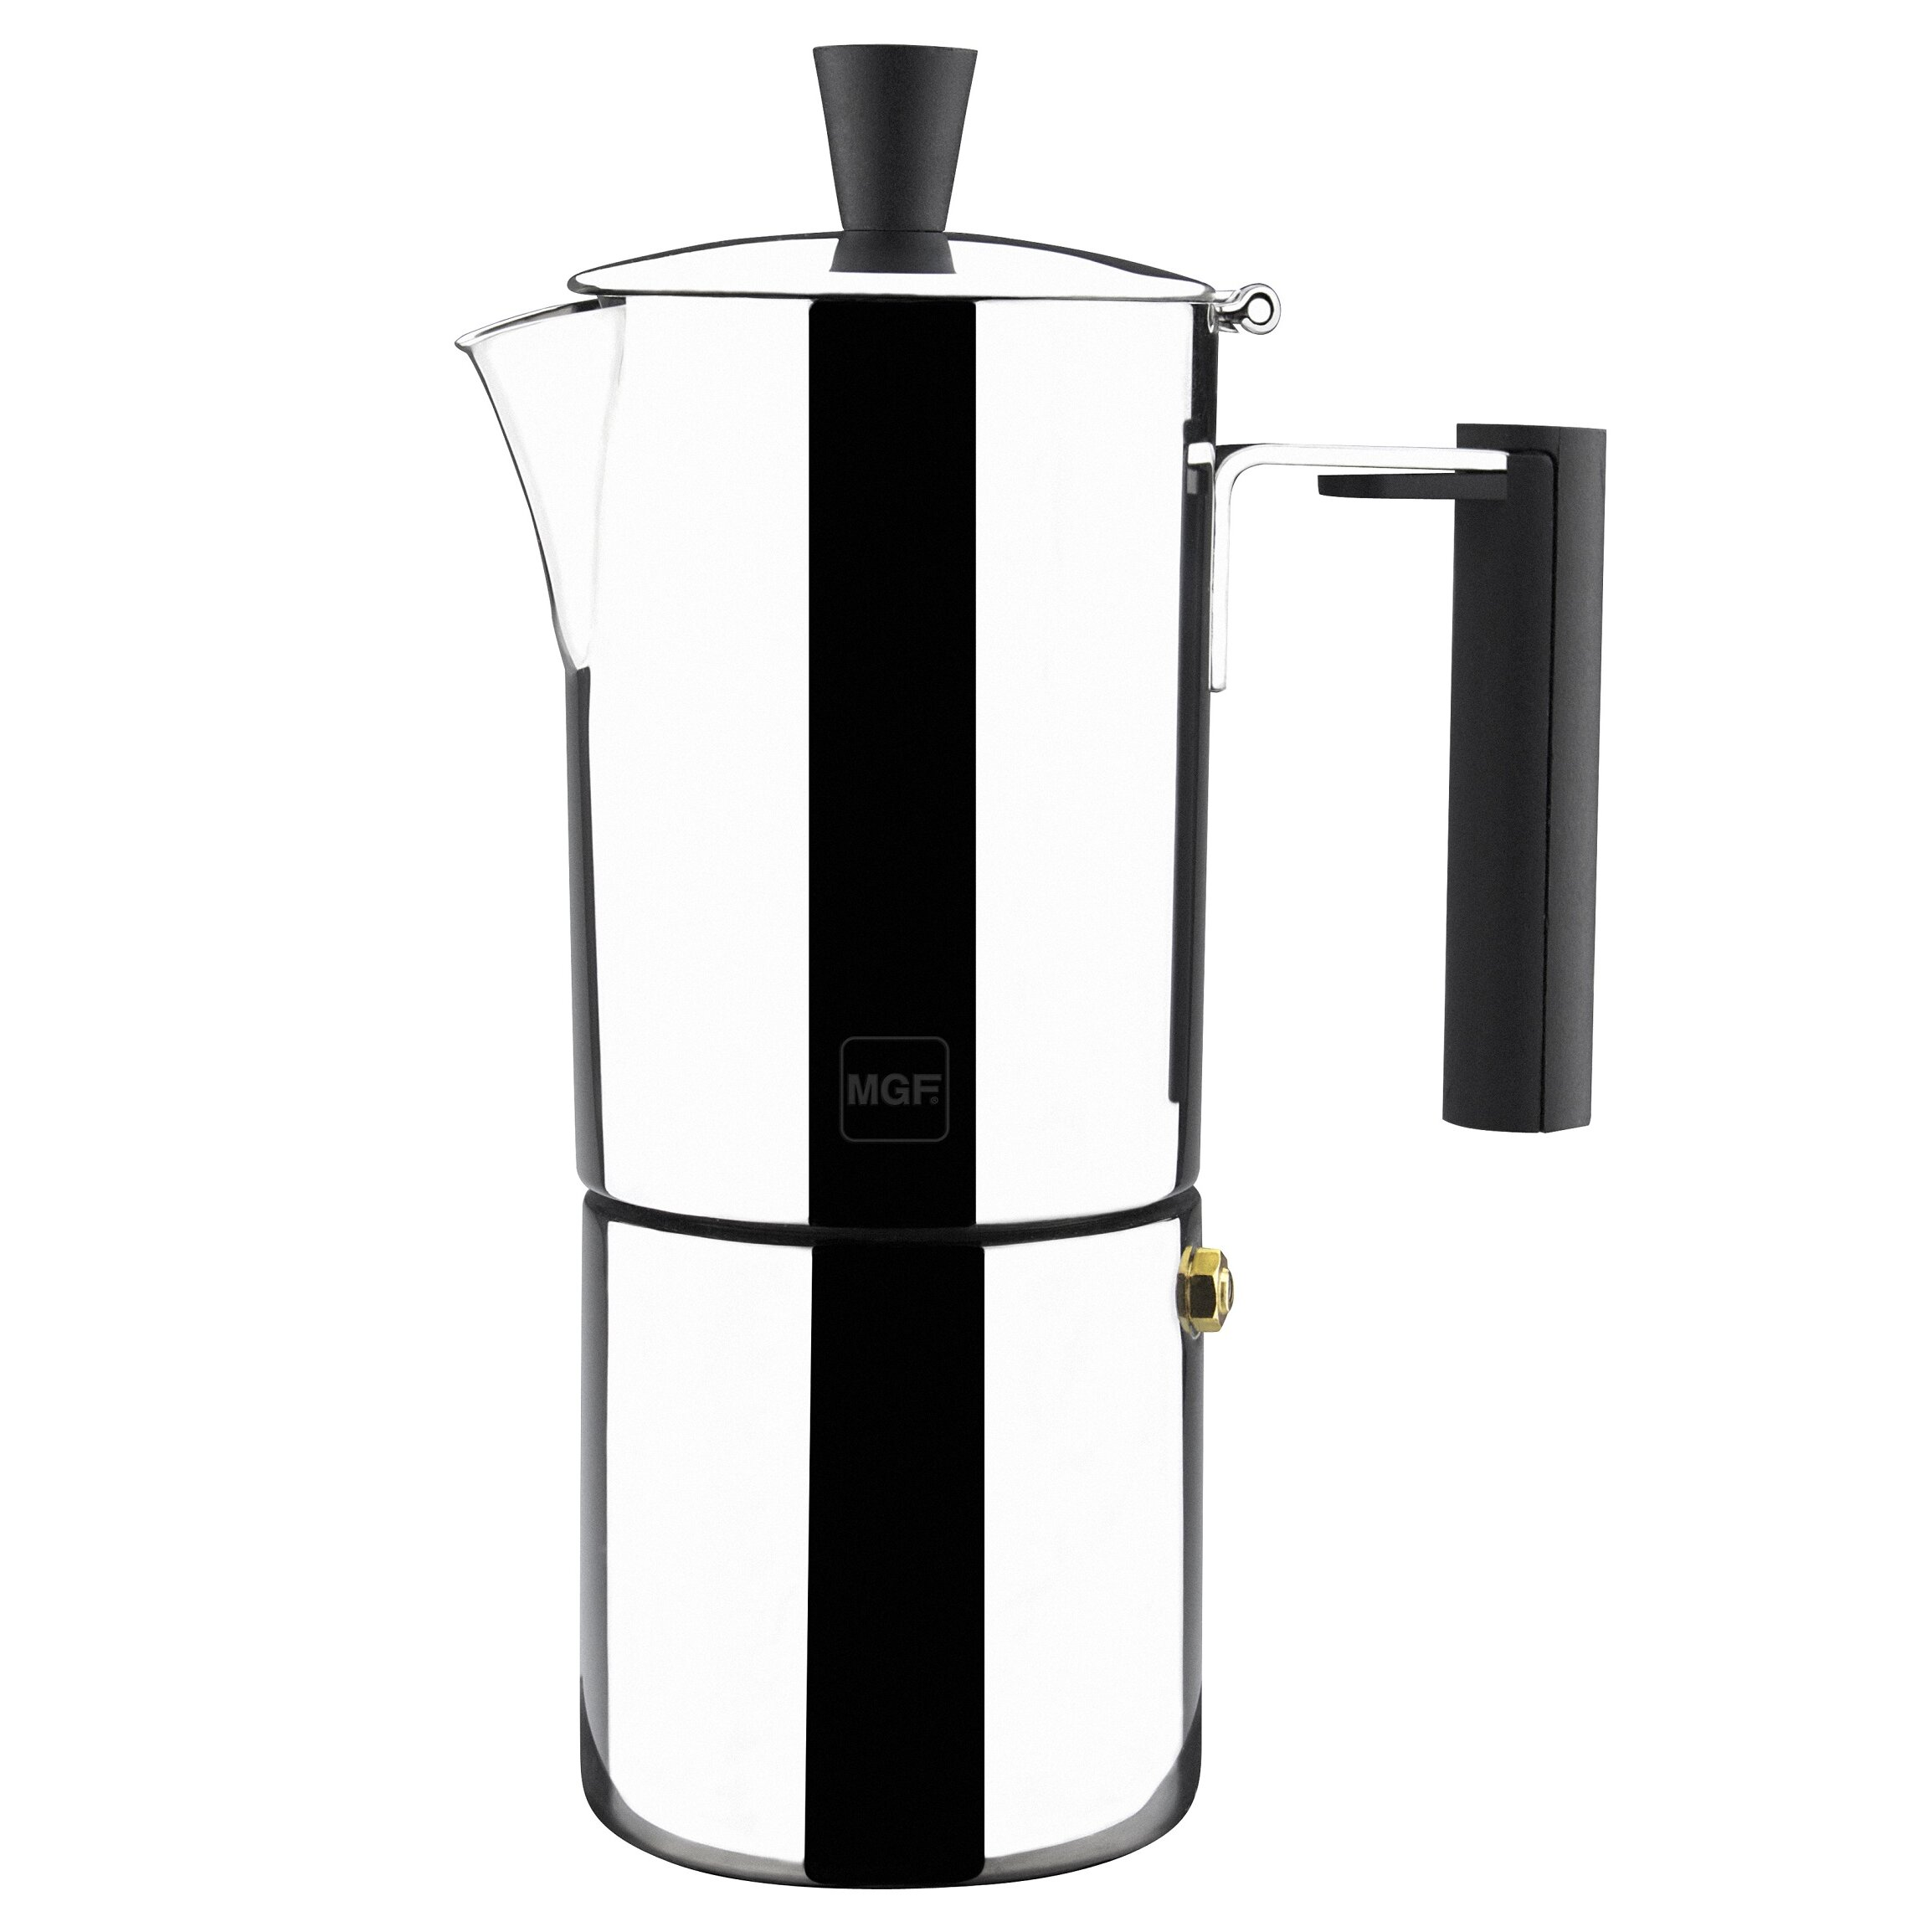 Stainless steel stovetop espresso maker 10 cup - Magefesa Capri Stainless Steel 10 Cups Coffee Maker